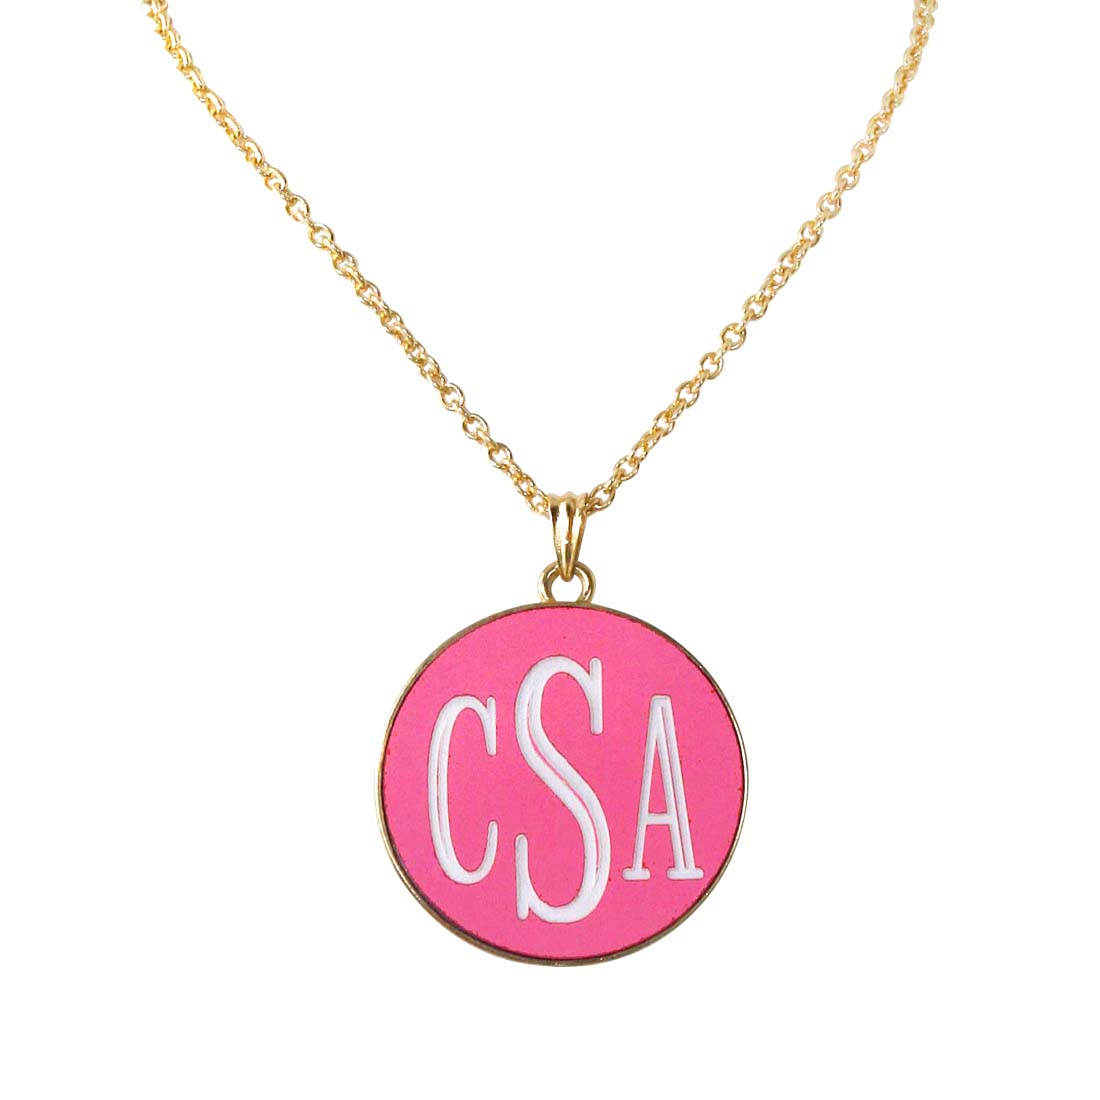 Hot Pink Josie Necklace - Gold Plated Chain